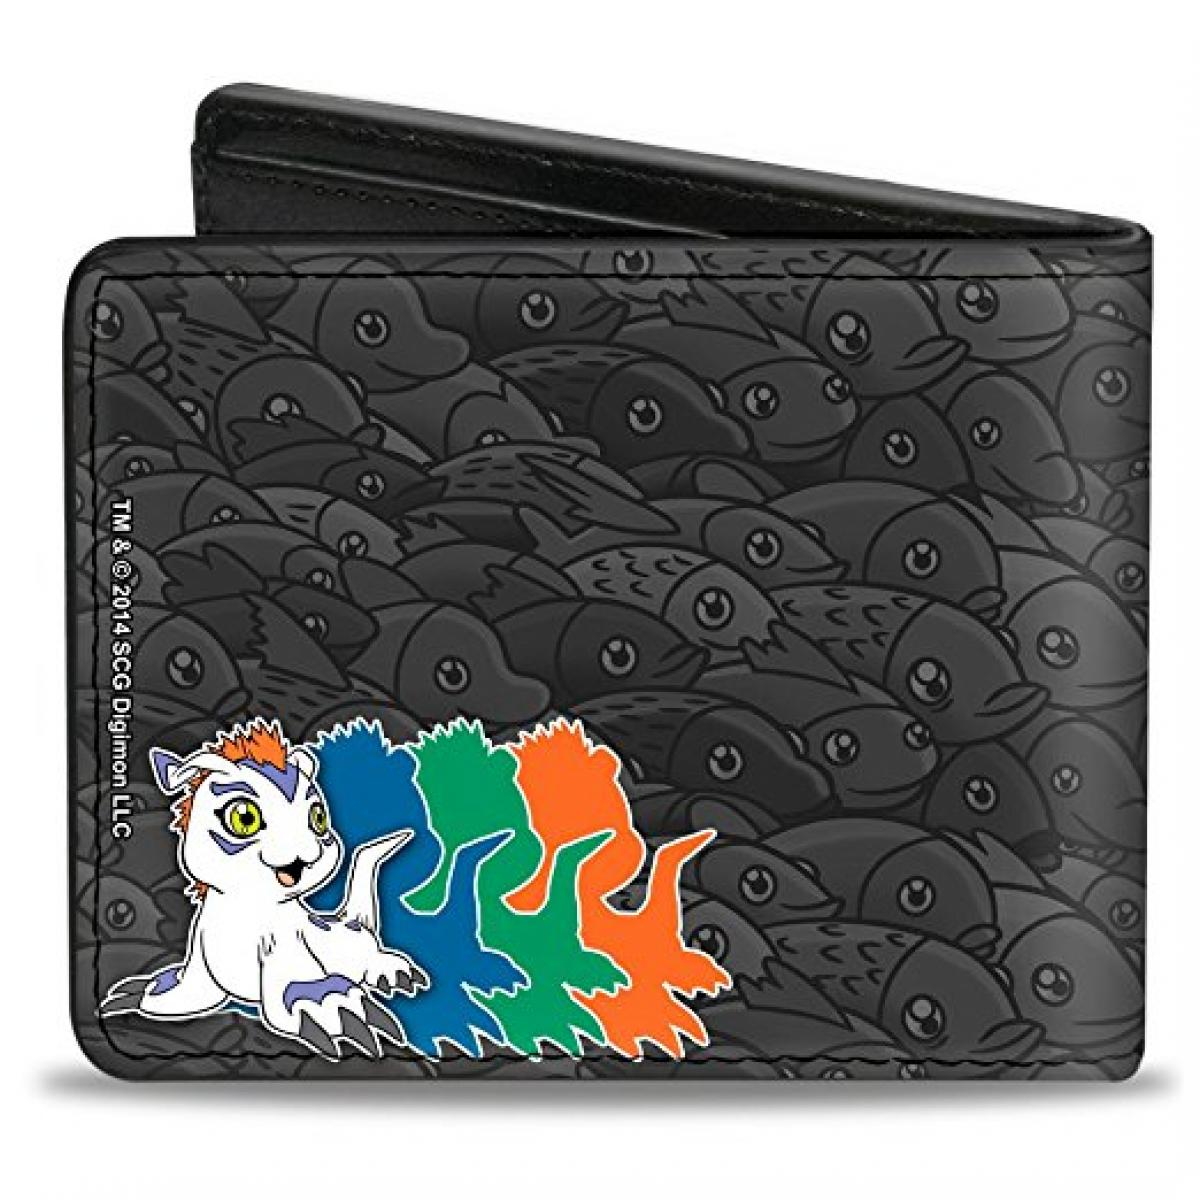 Digimon Joe Kido Wallet